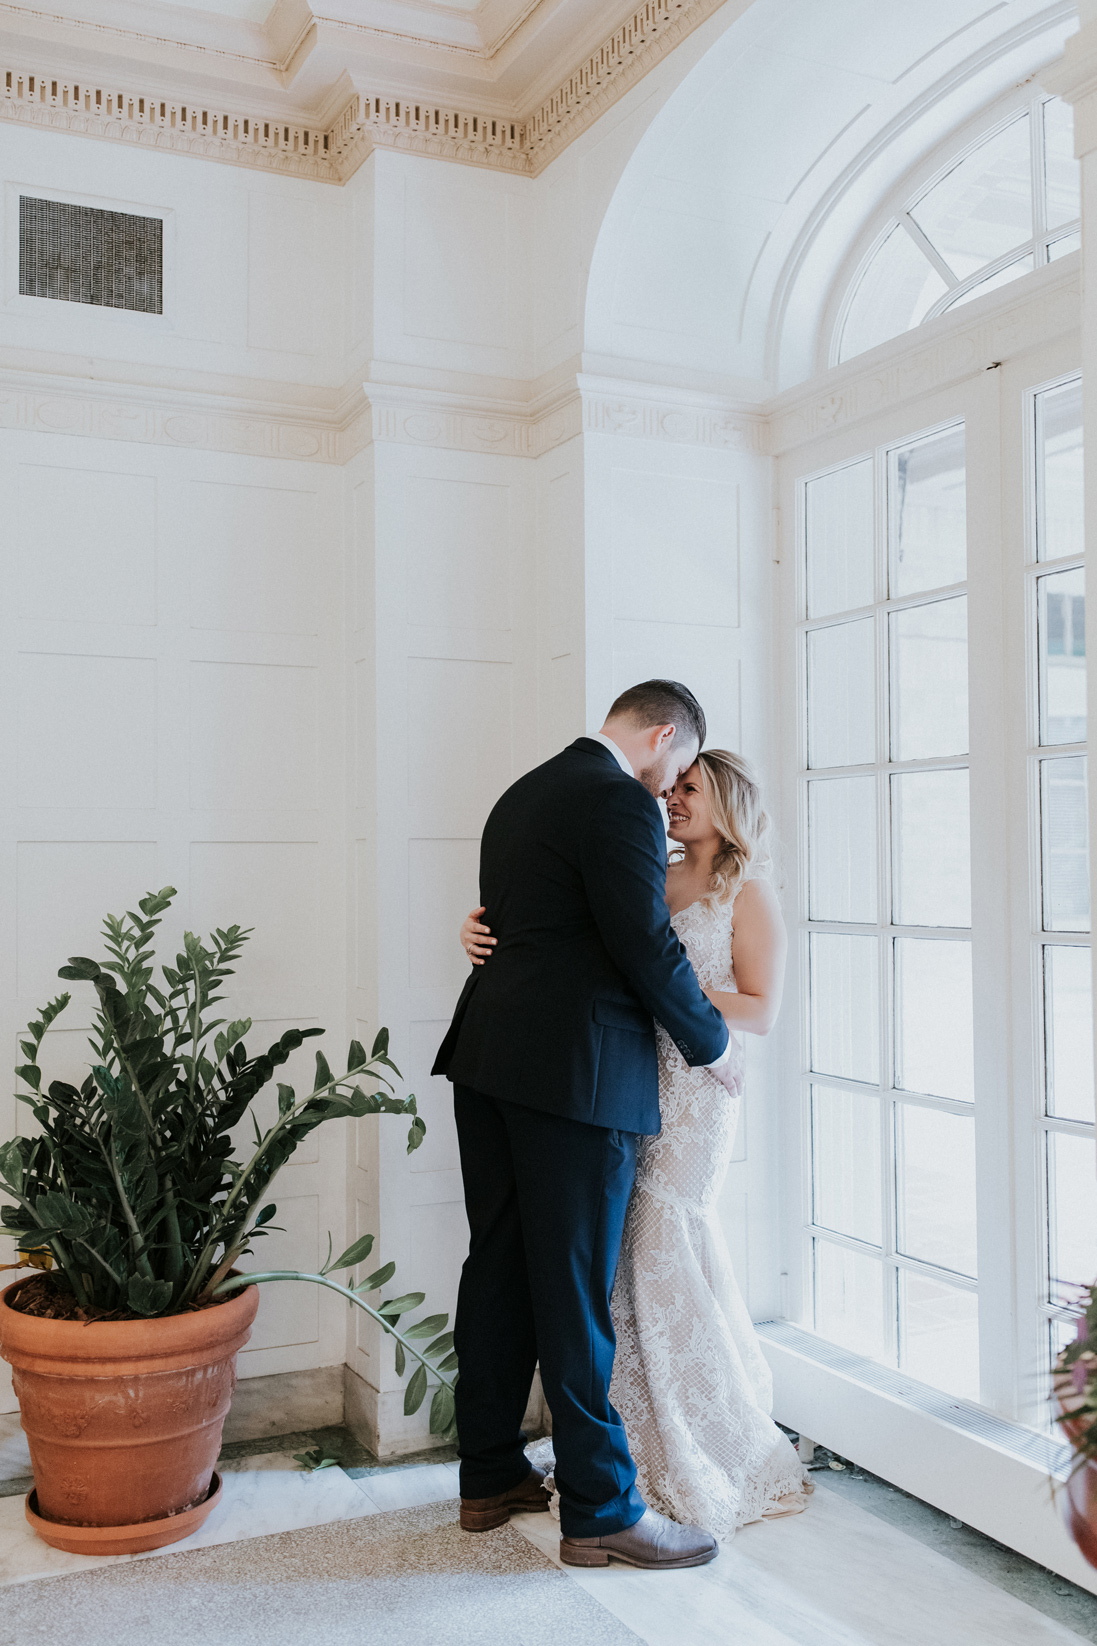 An image from JOSH + ERIN gallery